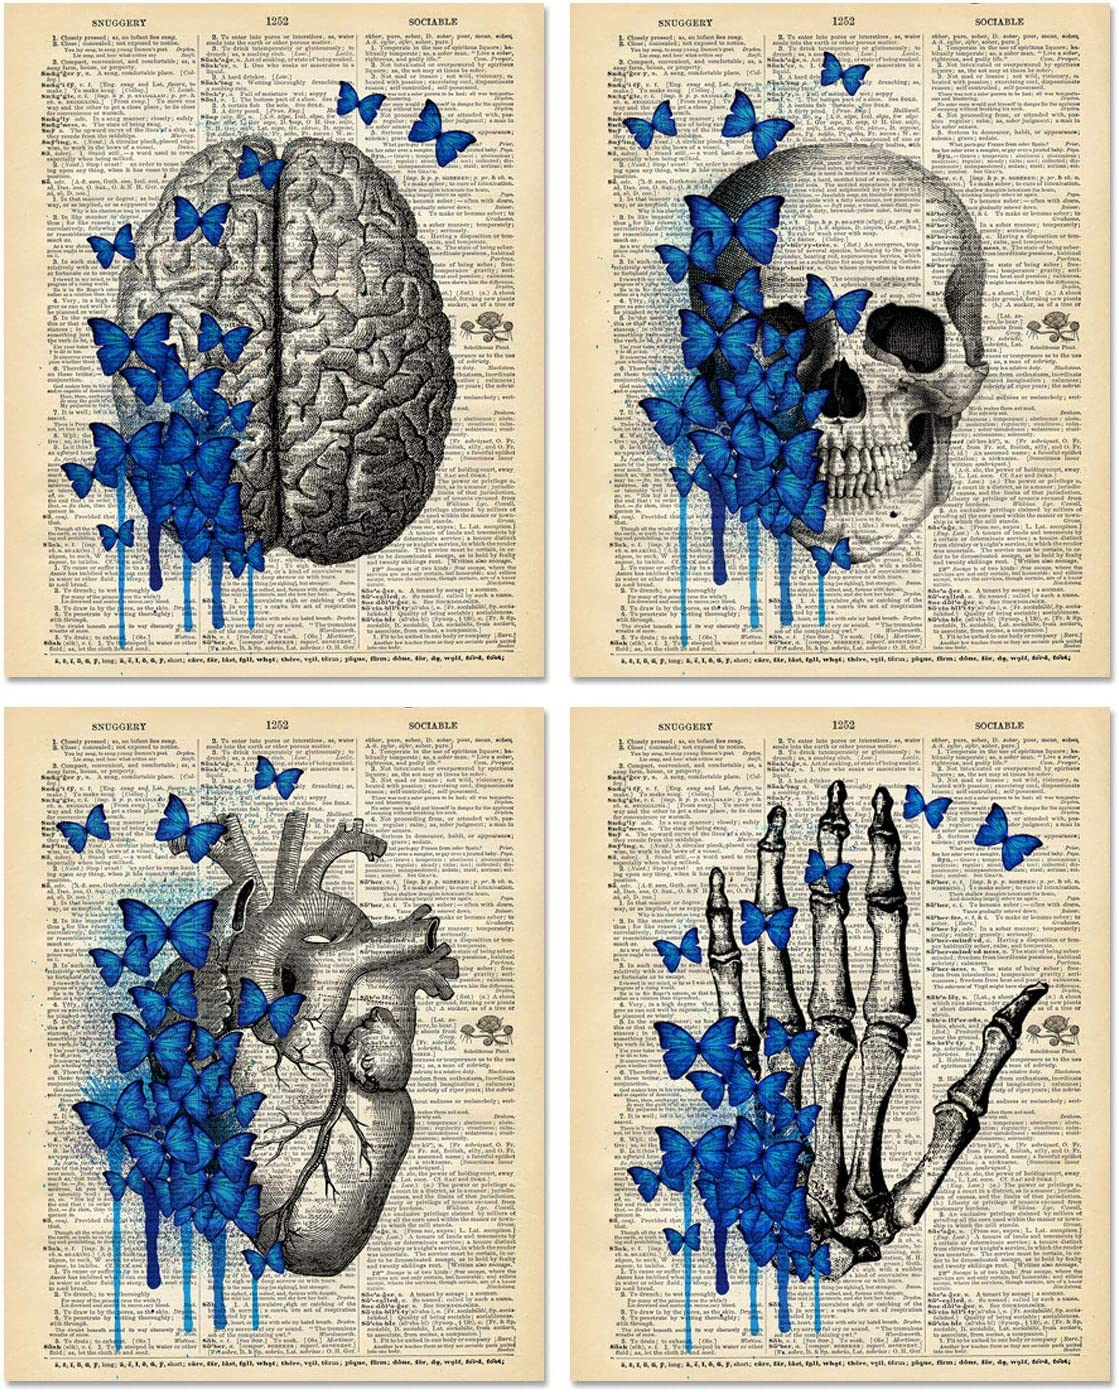 Flower Anatomy Art Prints - Dictionary Organs Goth Room Decor - Set of 4 Unframed (8x10 inches) Steampunk Medical Wall Decor - Vintage Theme - Not On Real Dictionary Pages - Set 2